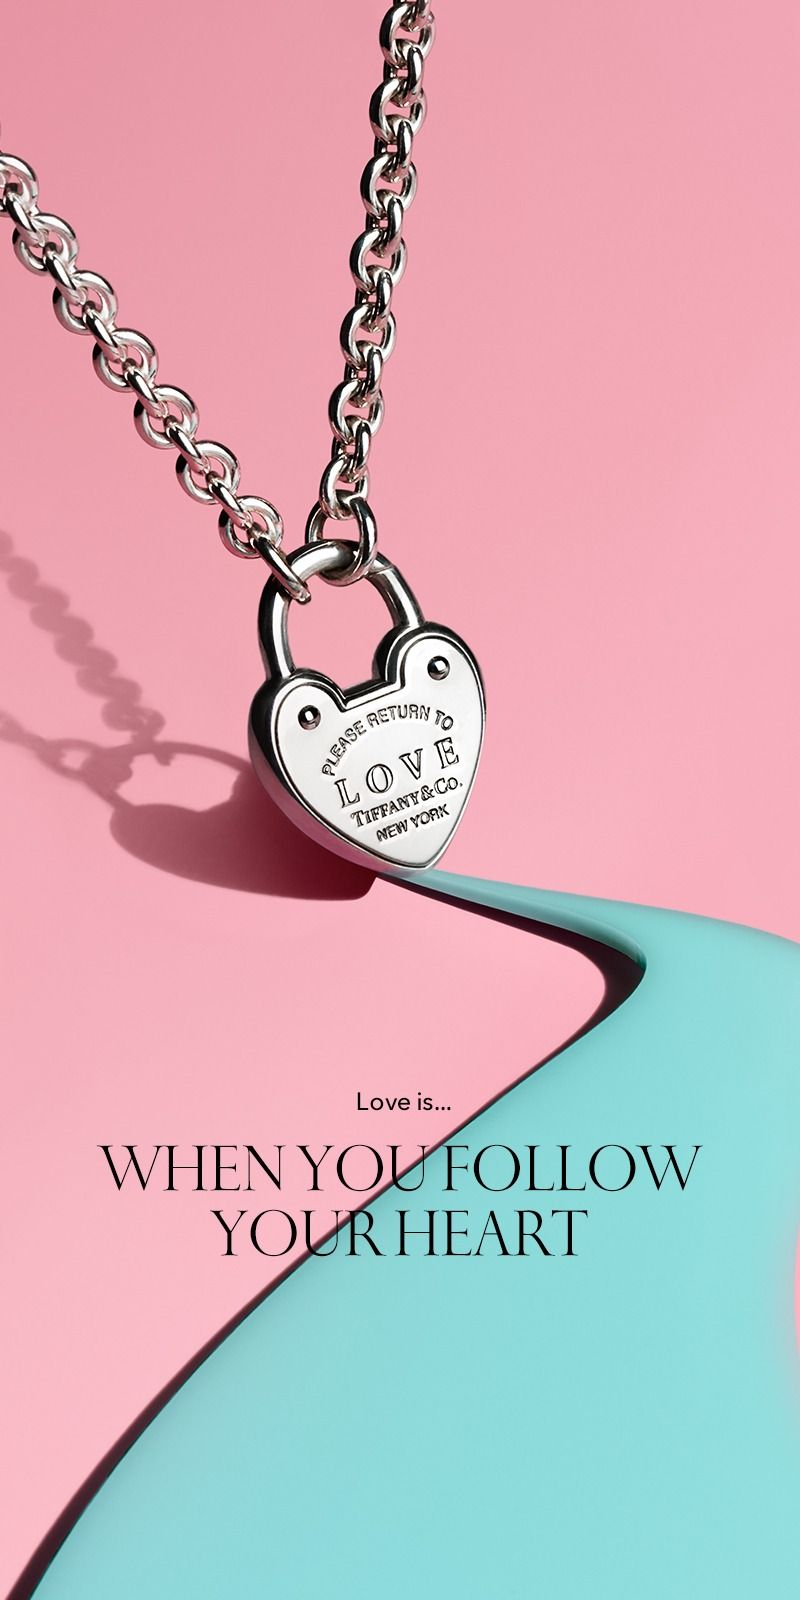 Love Lock Necklace | The Tiffany Valentine's Day Gift Guide In 2019 Regarding Newest Heart & Love You More Round Pendant Necklaces (View 12 of 25)